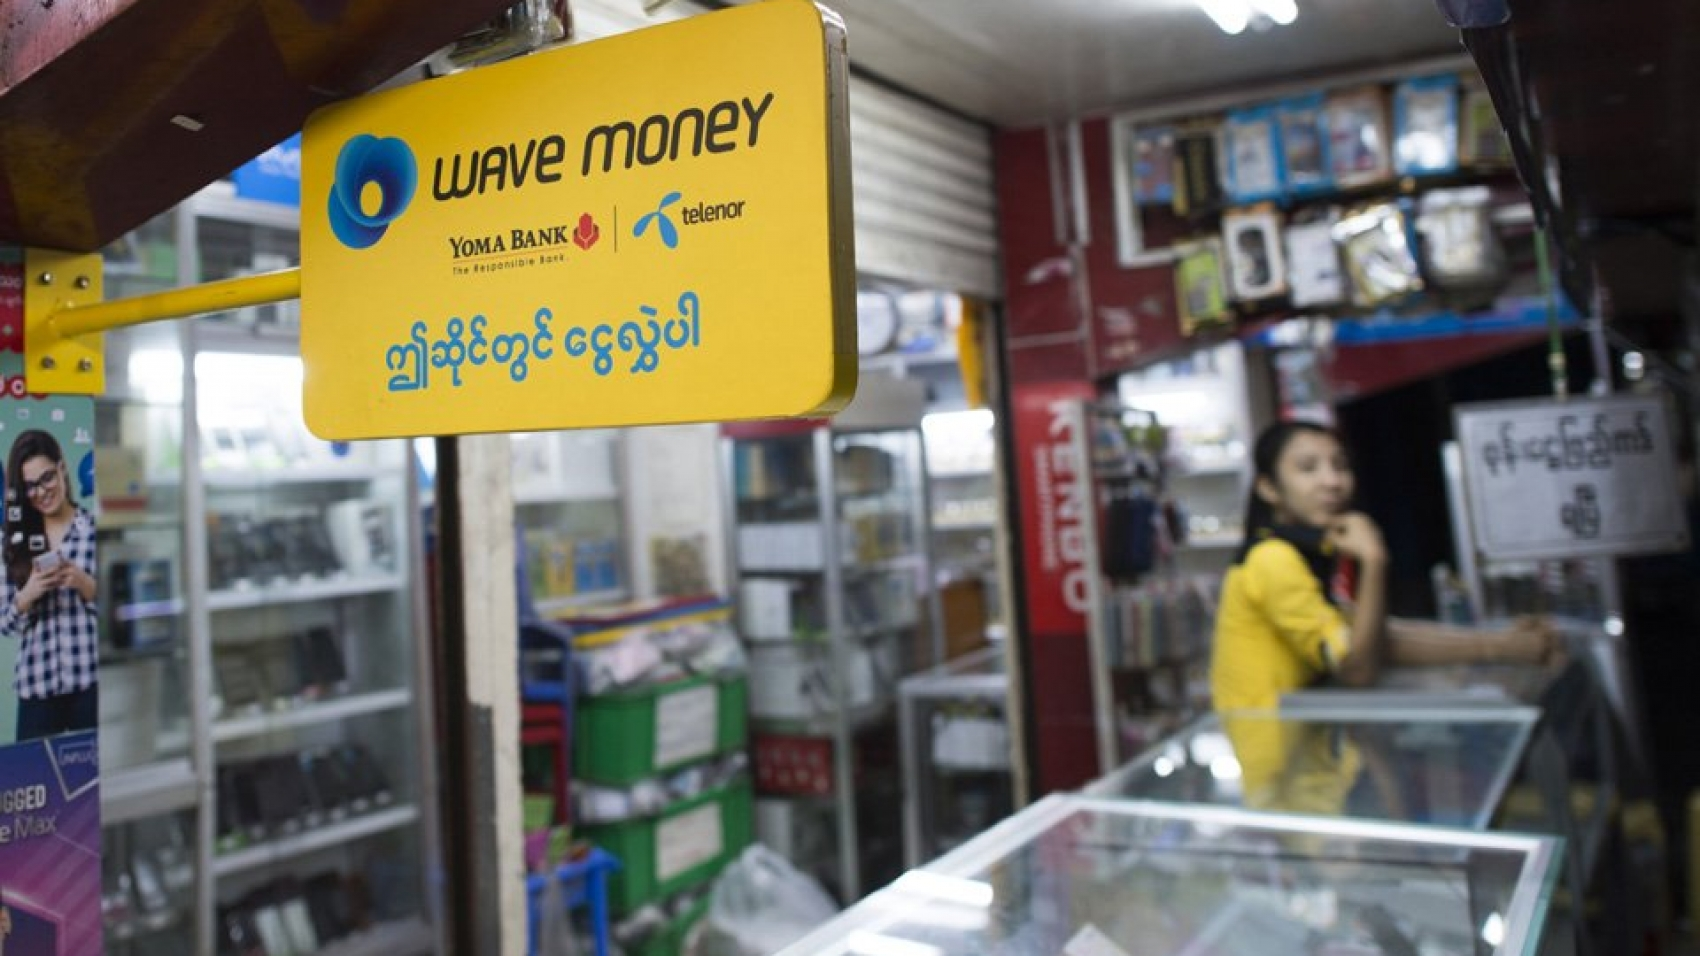 signboard-for-mobile-banking-firm-wave-money